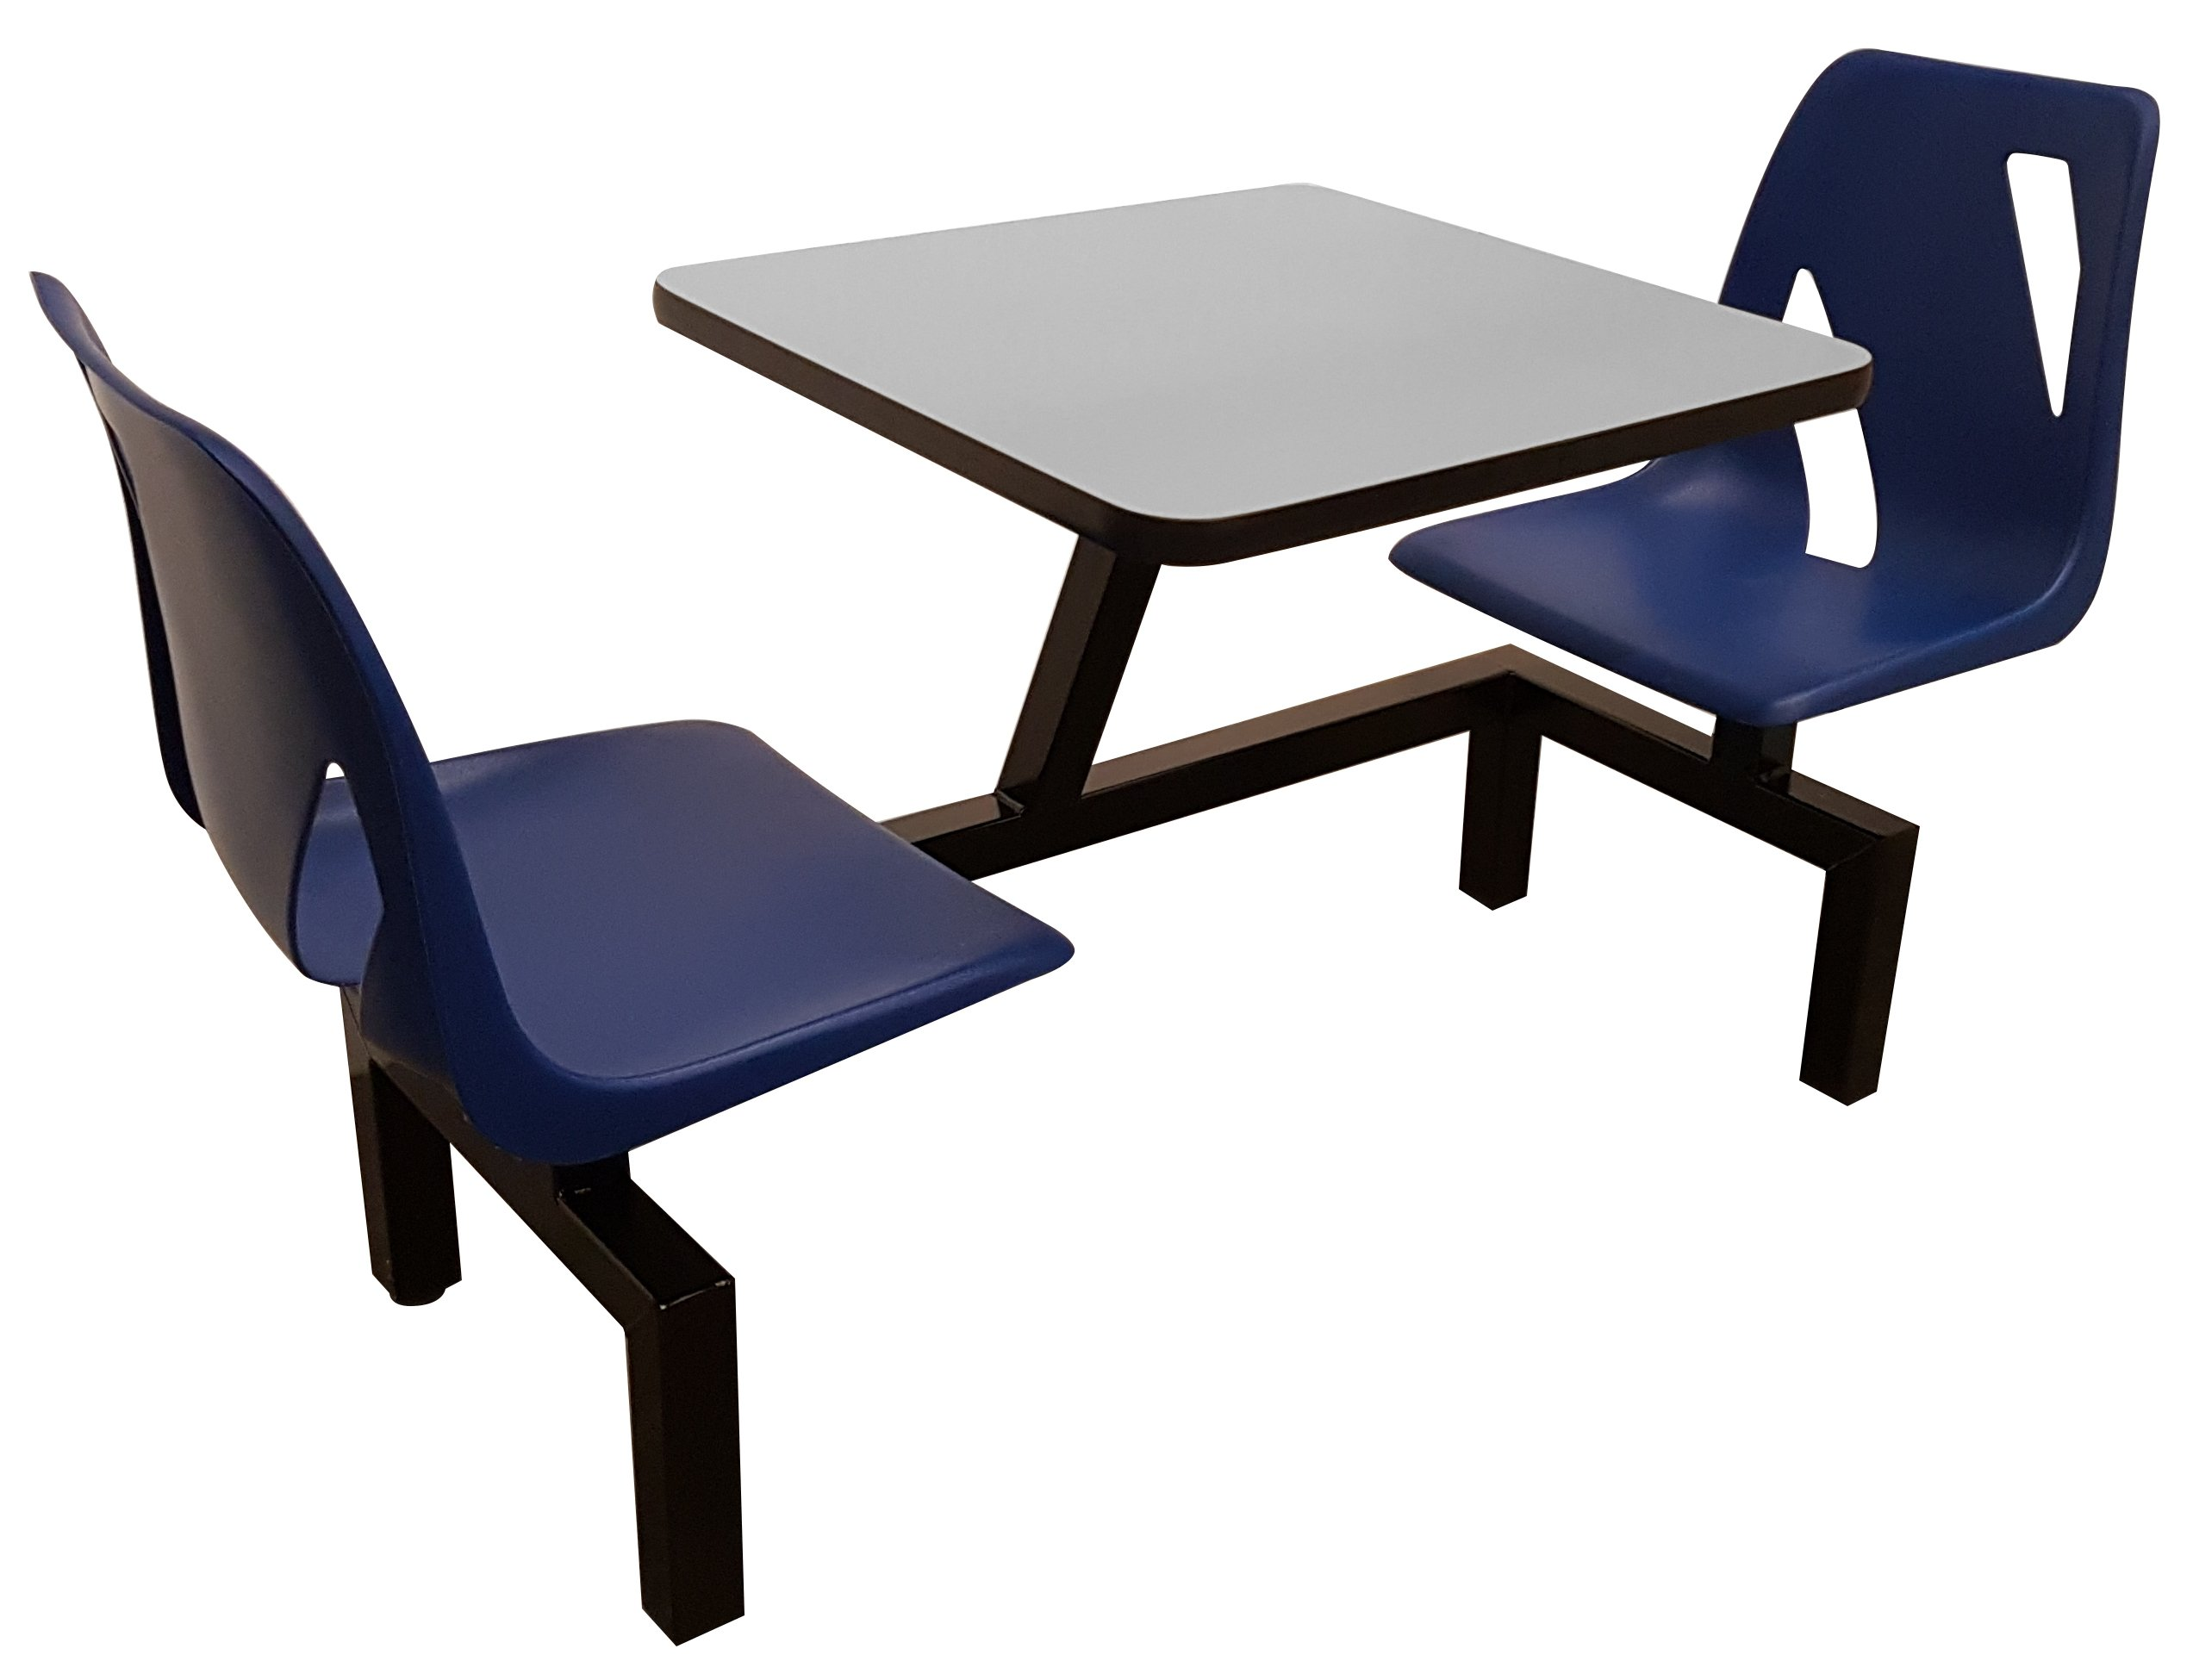 Rodo Industries DS2W-BL-GR DS2W,BL,GR DS Series Public Cluster Modular Seating, Two Seat Wall Units, Blue Seat, Grey Tabletop, 60'' x 24'' x 29''